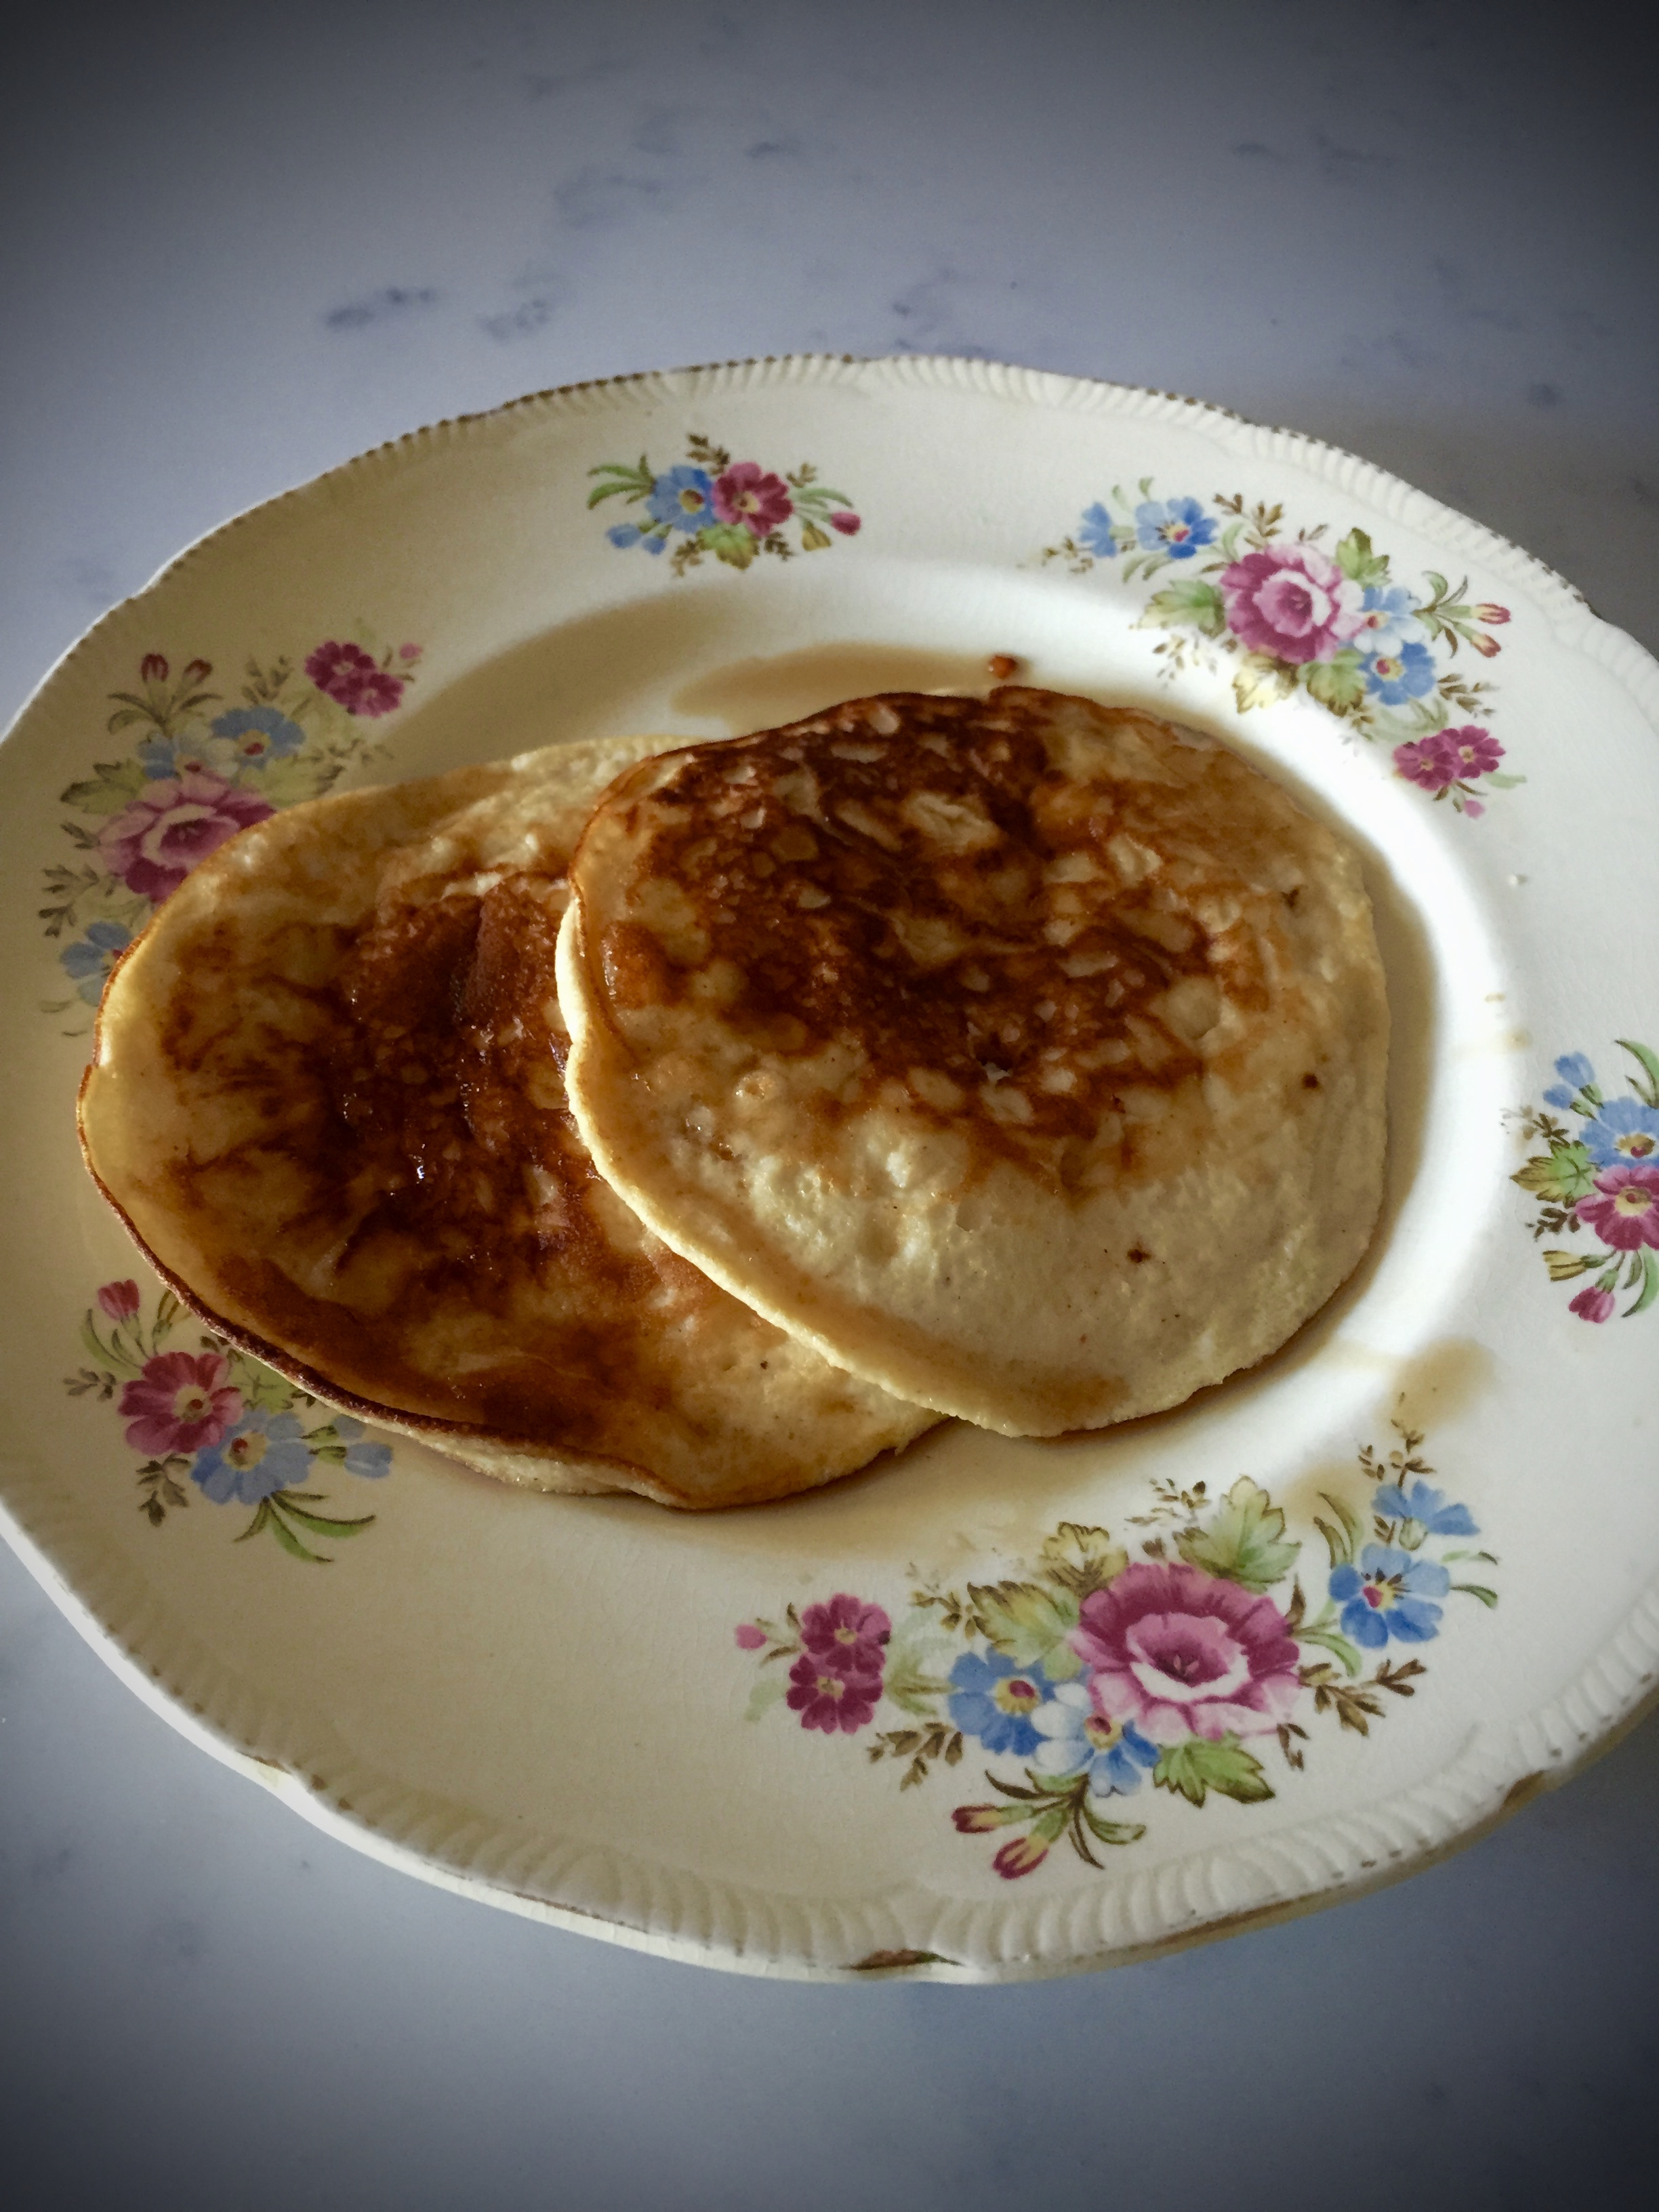 First attempt at flourless pancakes - will definitely try these again.